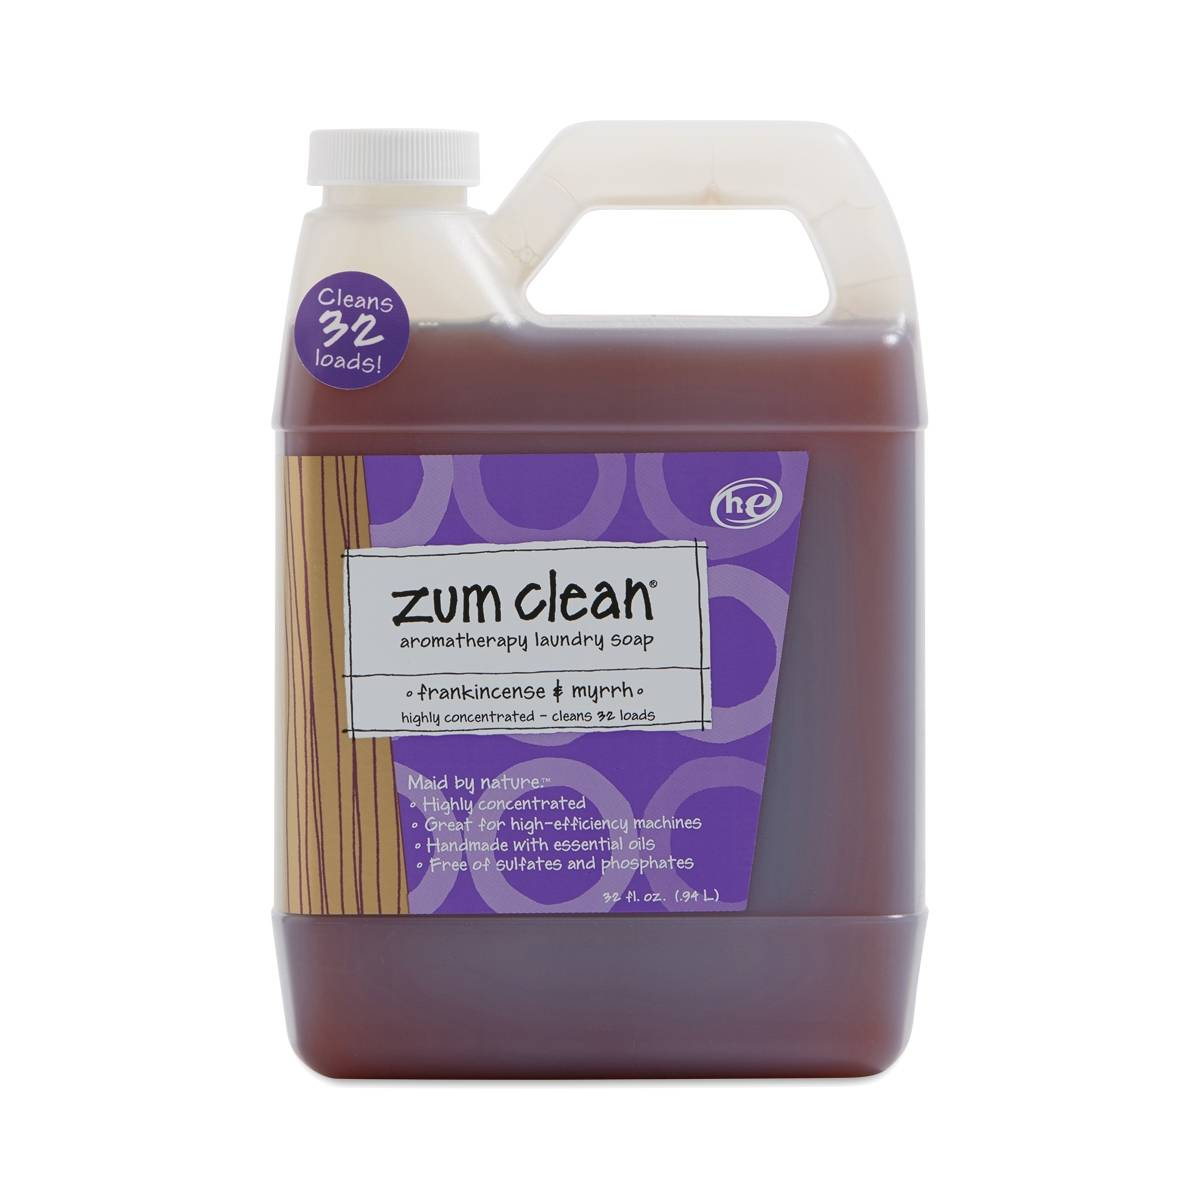 Zum Clean Laundry Soap Frankincense Amp Myrrh Thrive Market